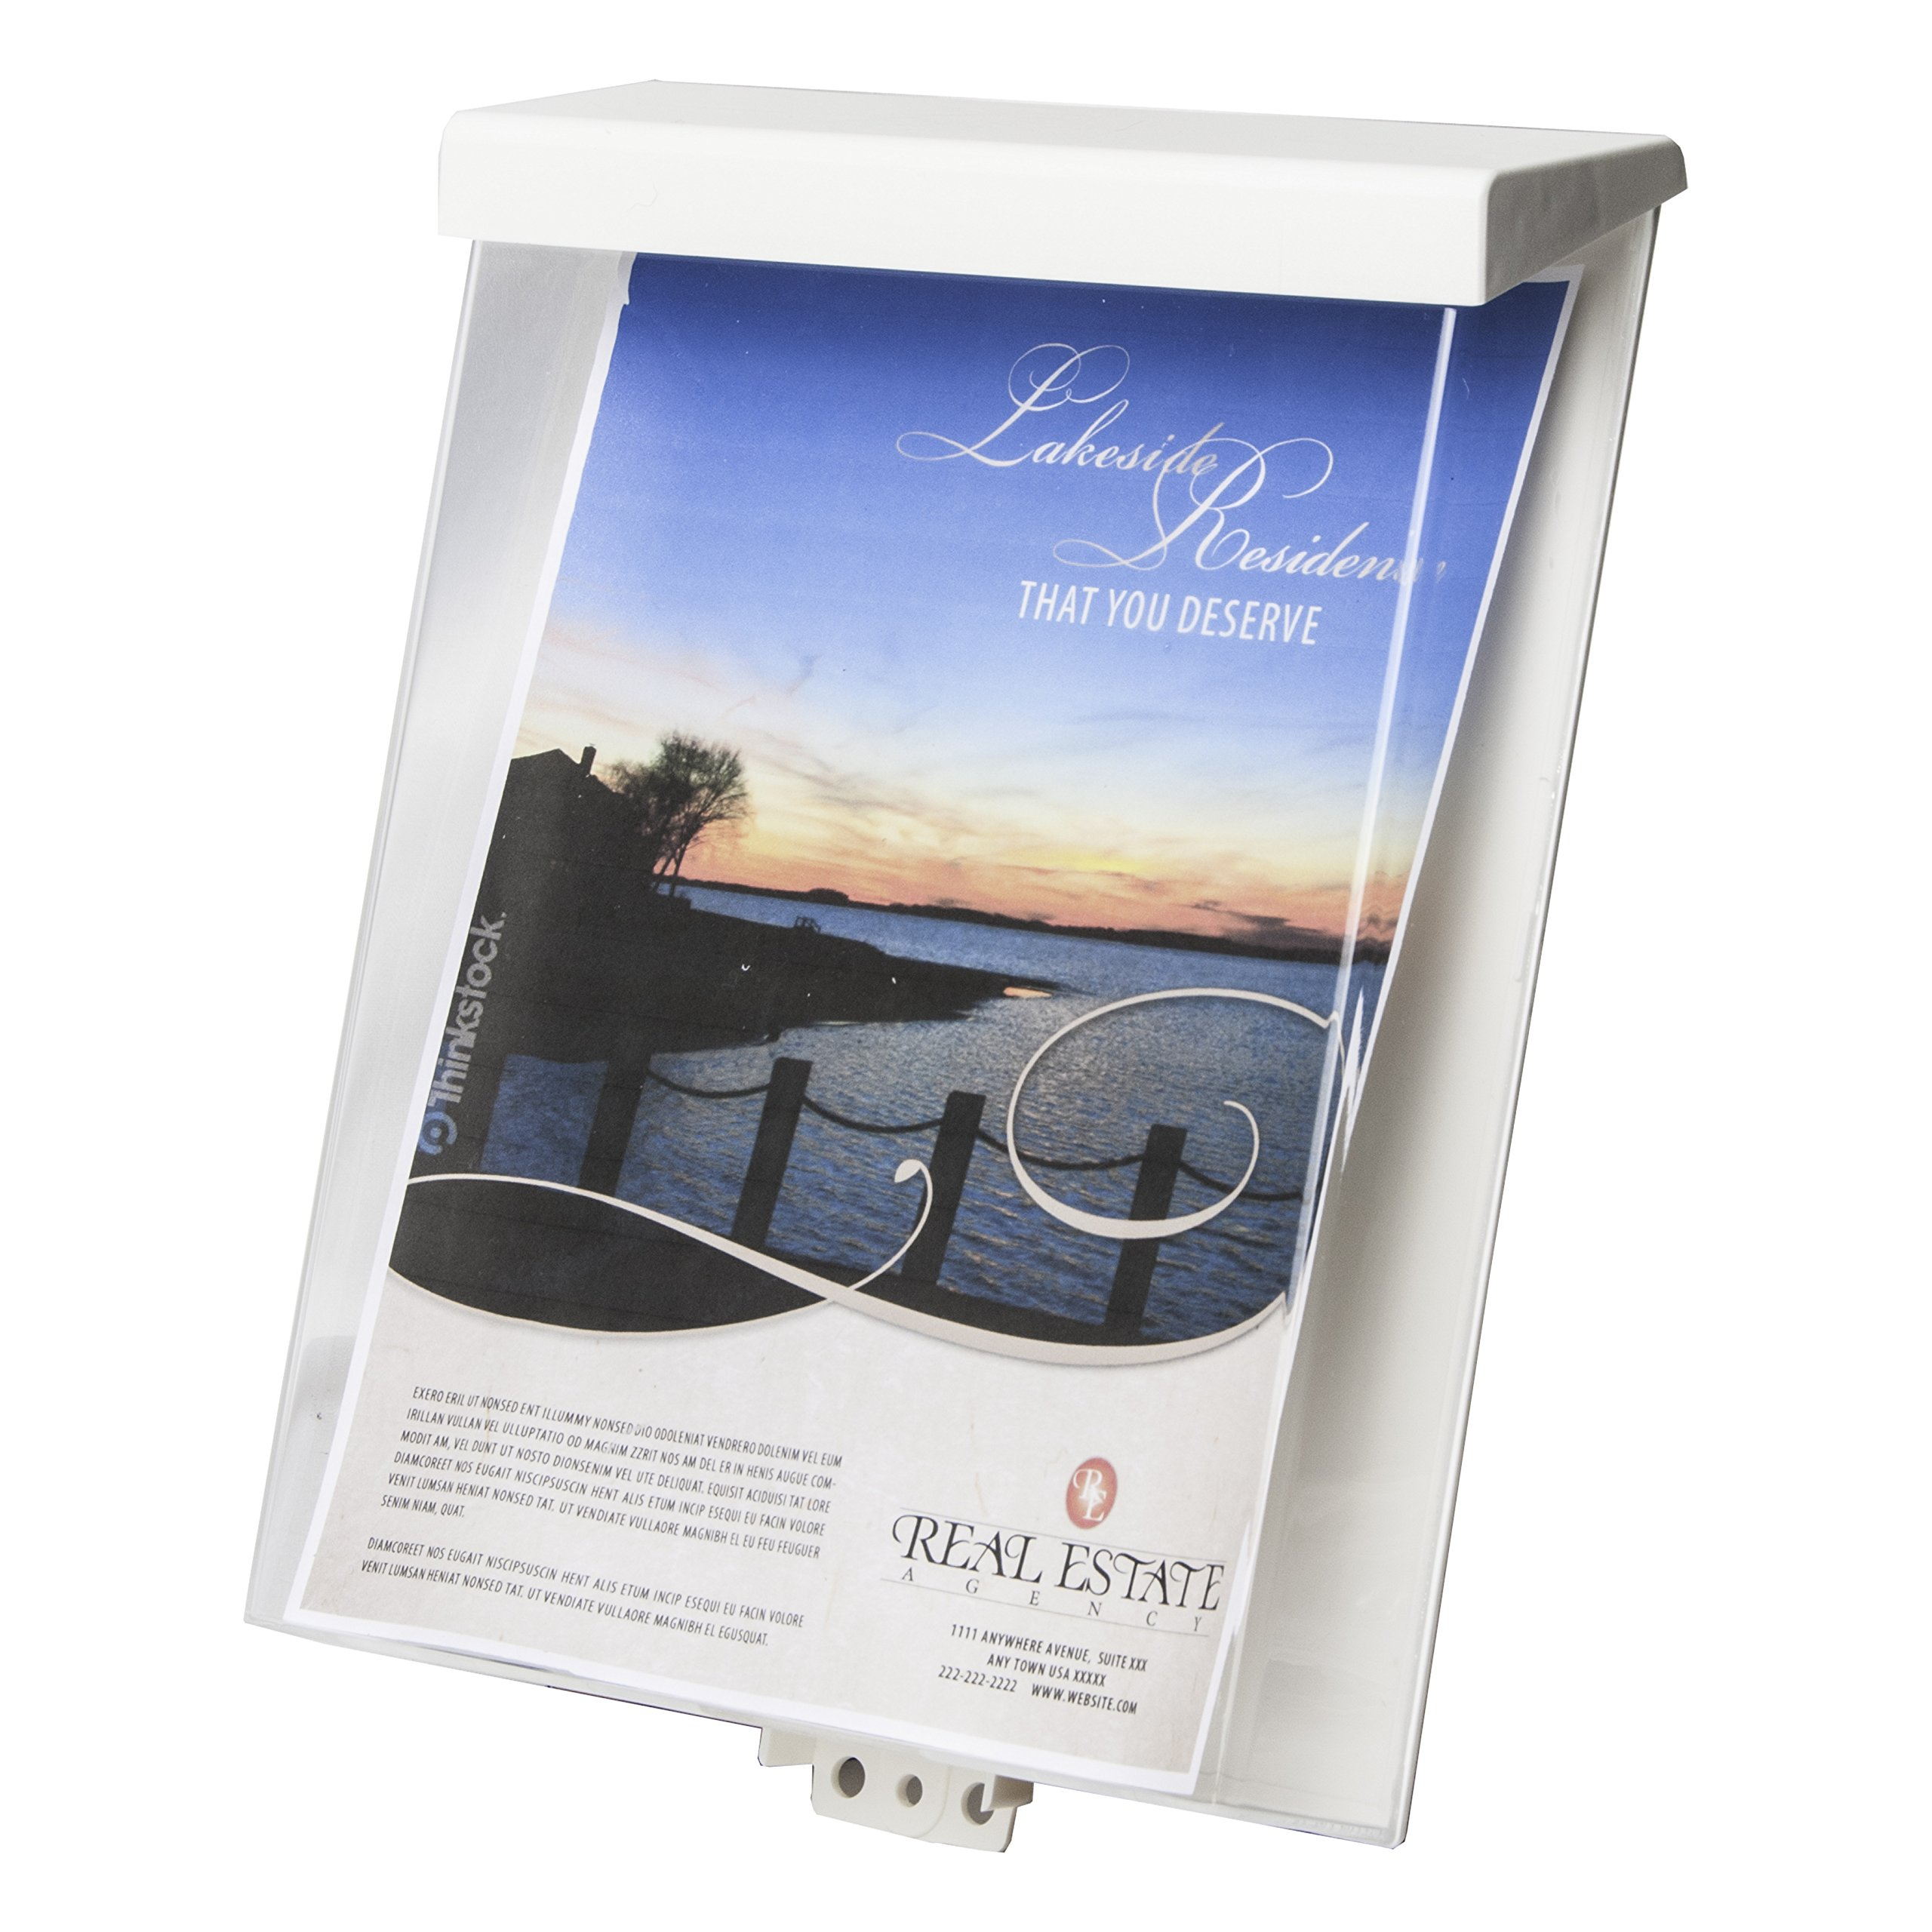 Clear-Ad - SRE-912-HD - Acrylic Waterproof Outdoor Brochure Holder with Self-Closing Lid - Plastic Heavy Duty Flyer Display 8.5x11 (Pack of 10)